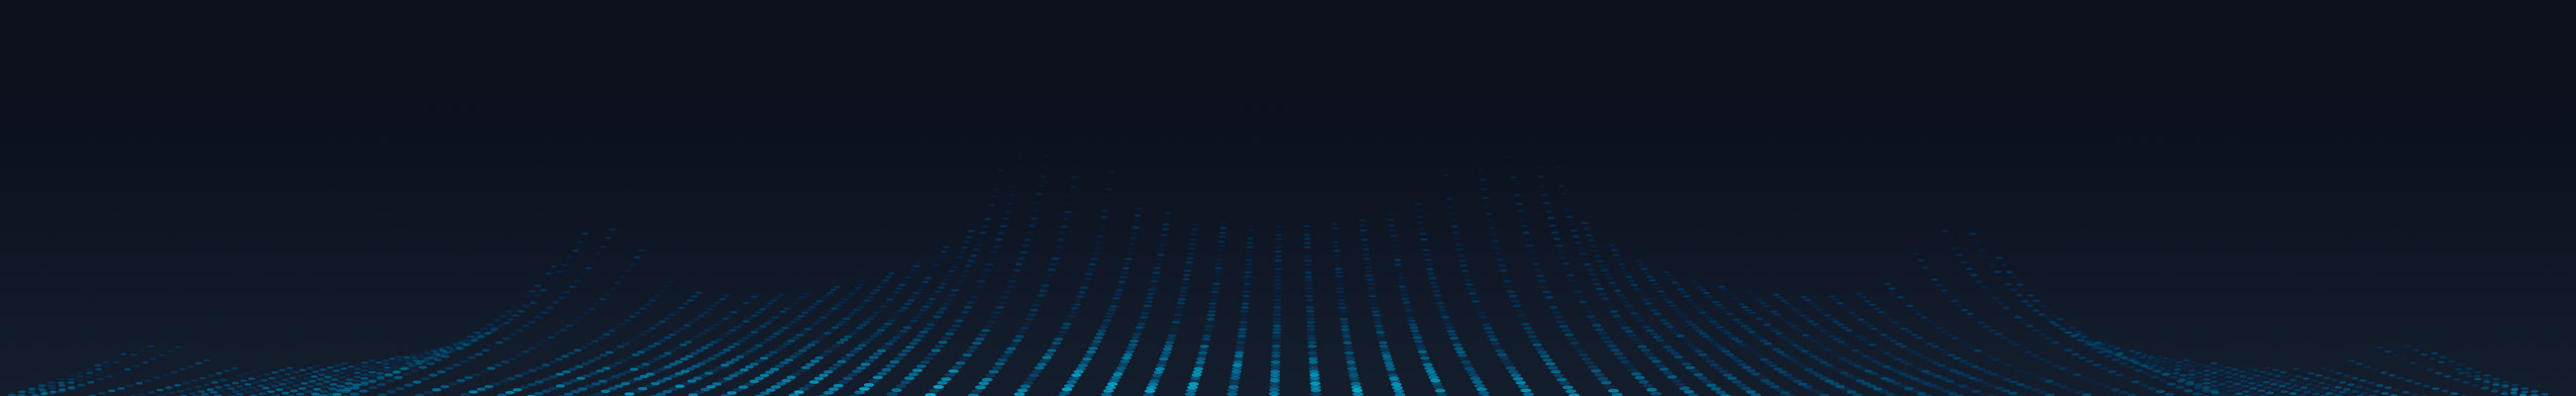 Dark background with blue wave lines